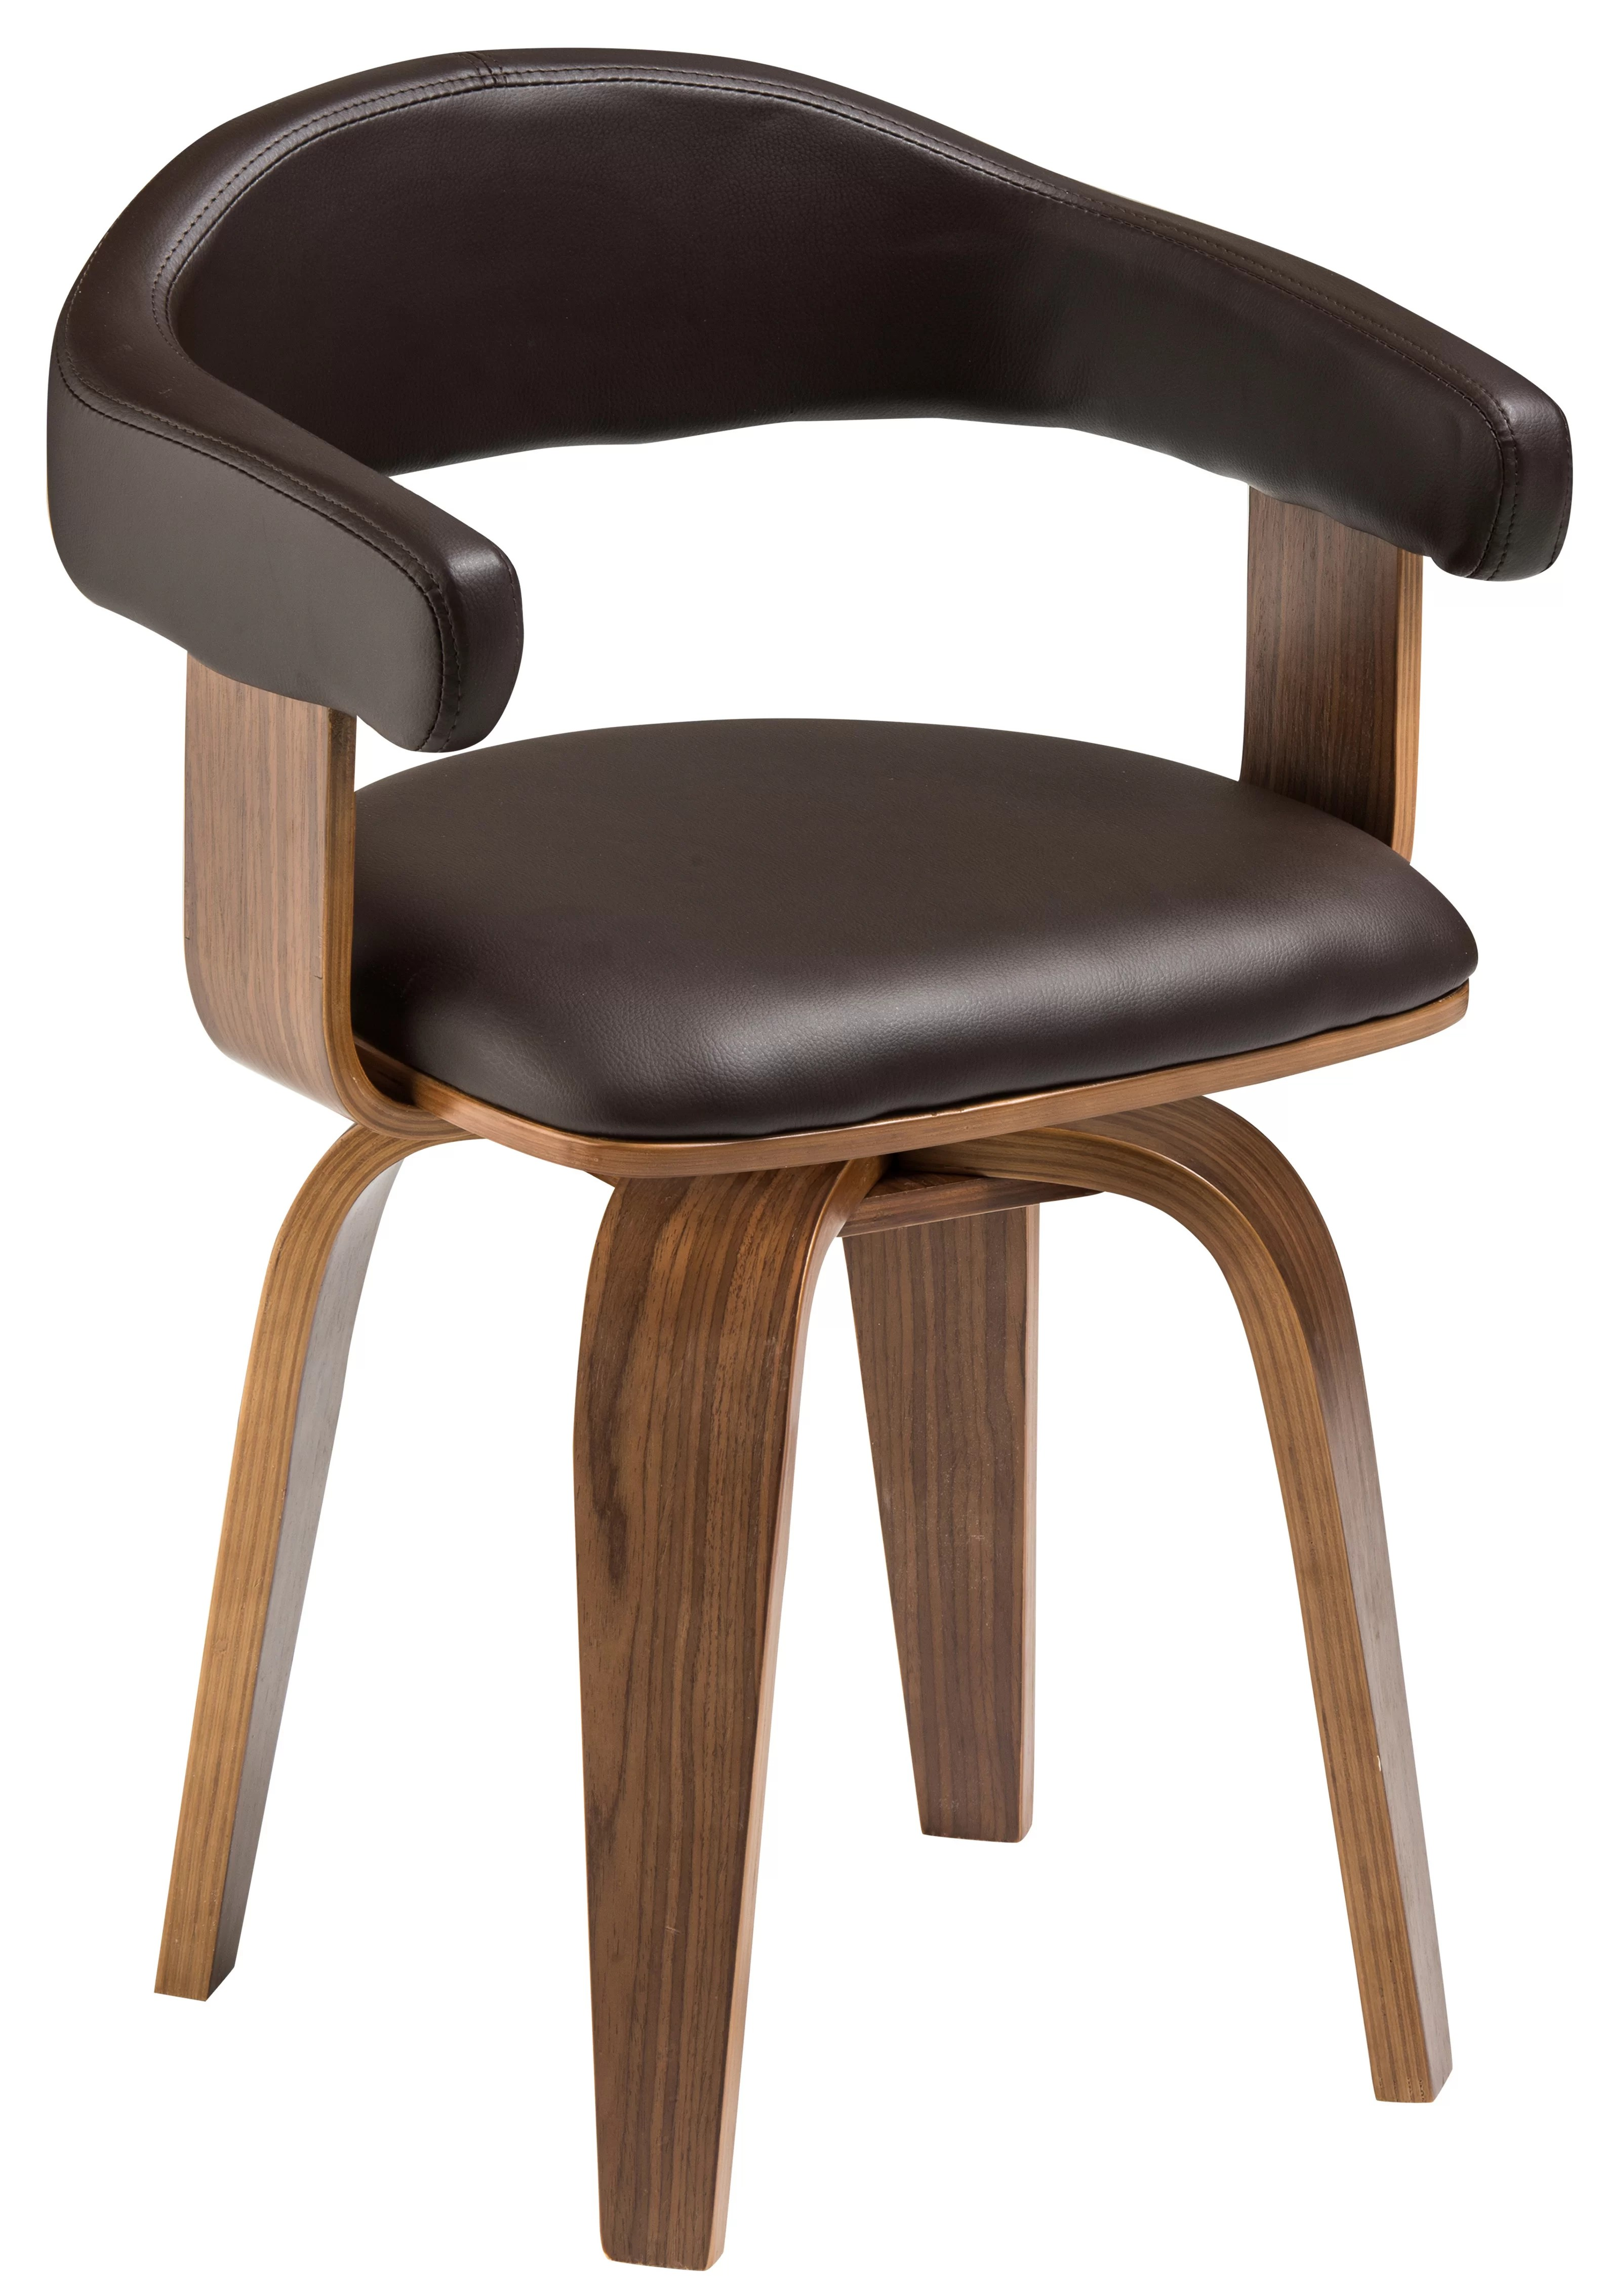 tub chair brown leather steelcase office chairs wayfair co uk holtz bentwood